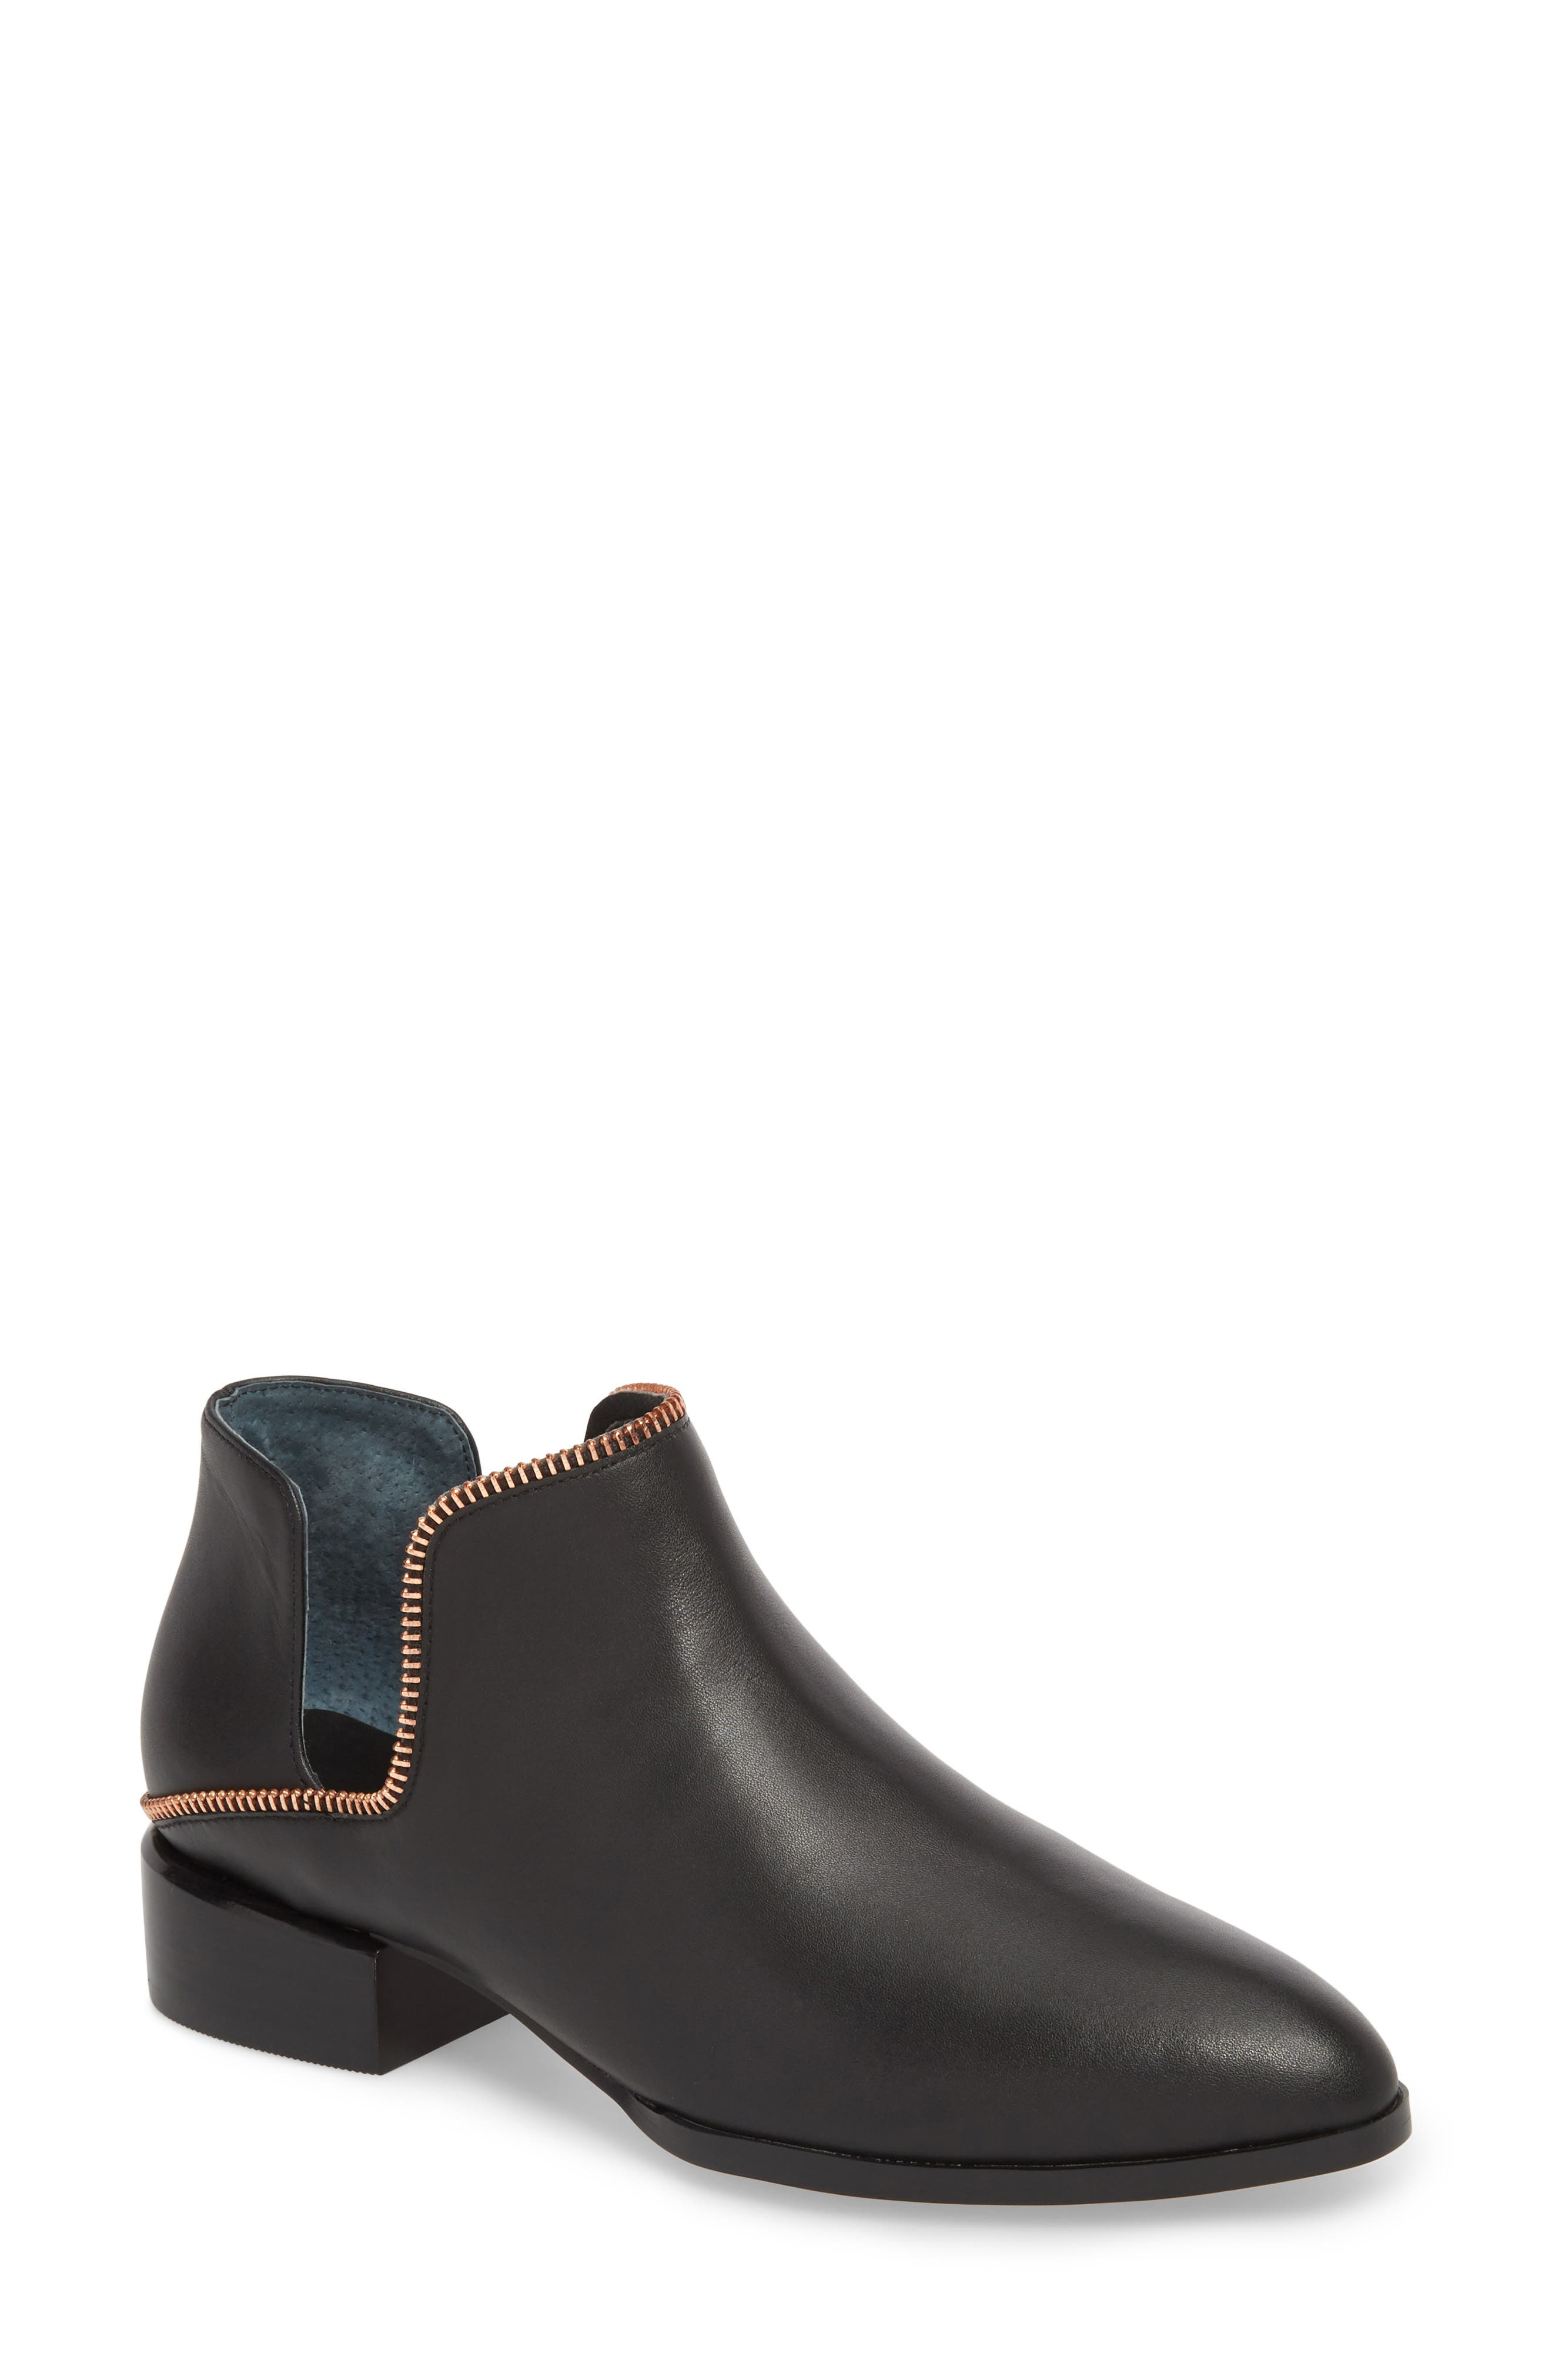 Piper Bootie,                             Main thumbnail 1, color,                             Black Leather/ Rosegold